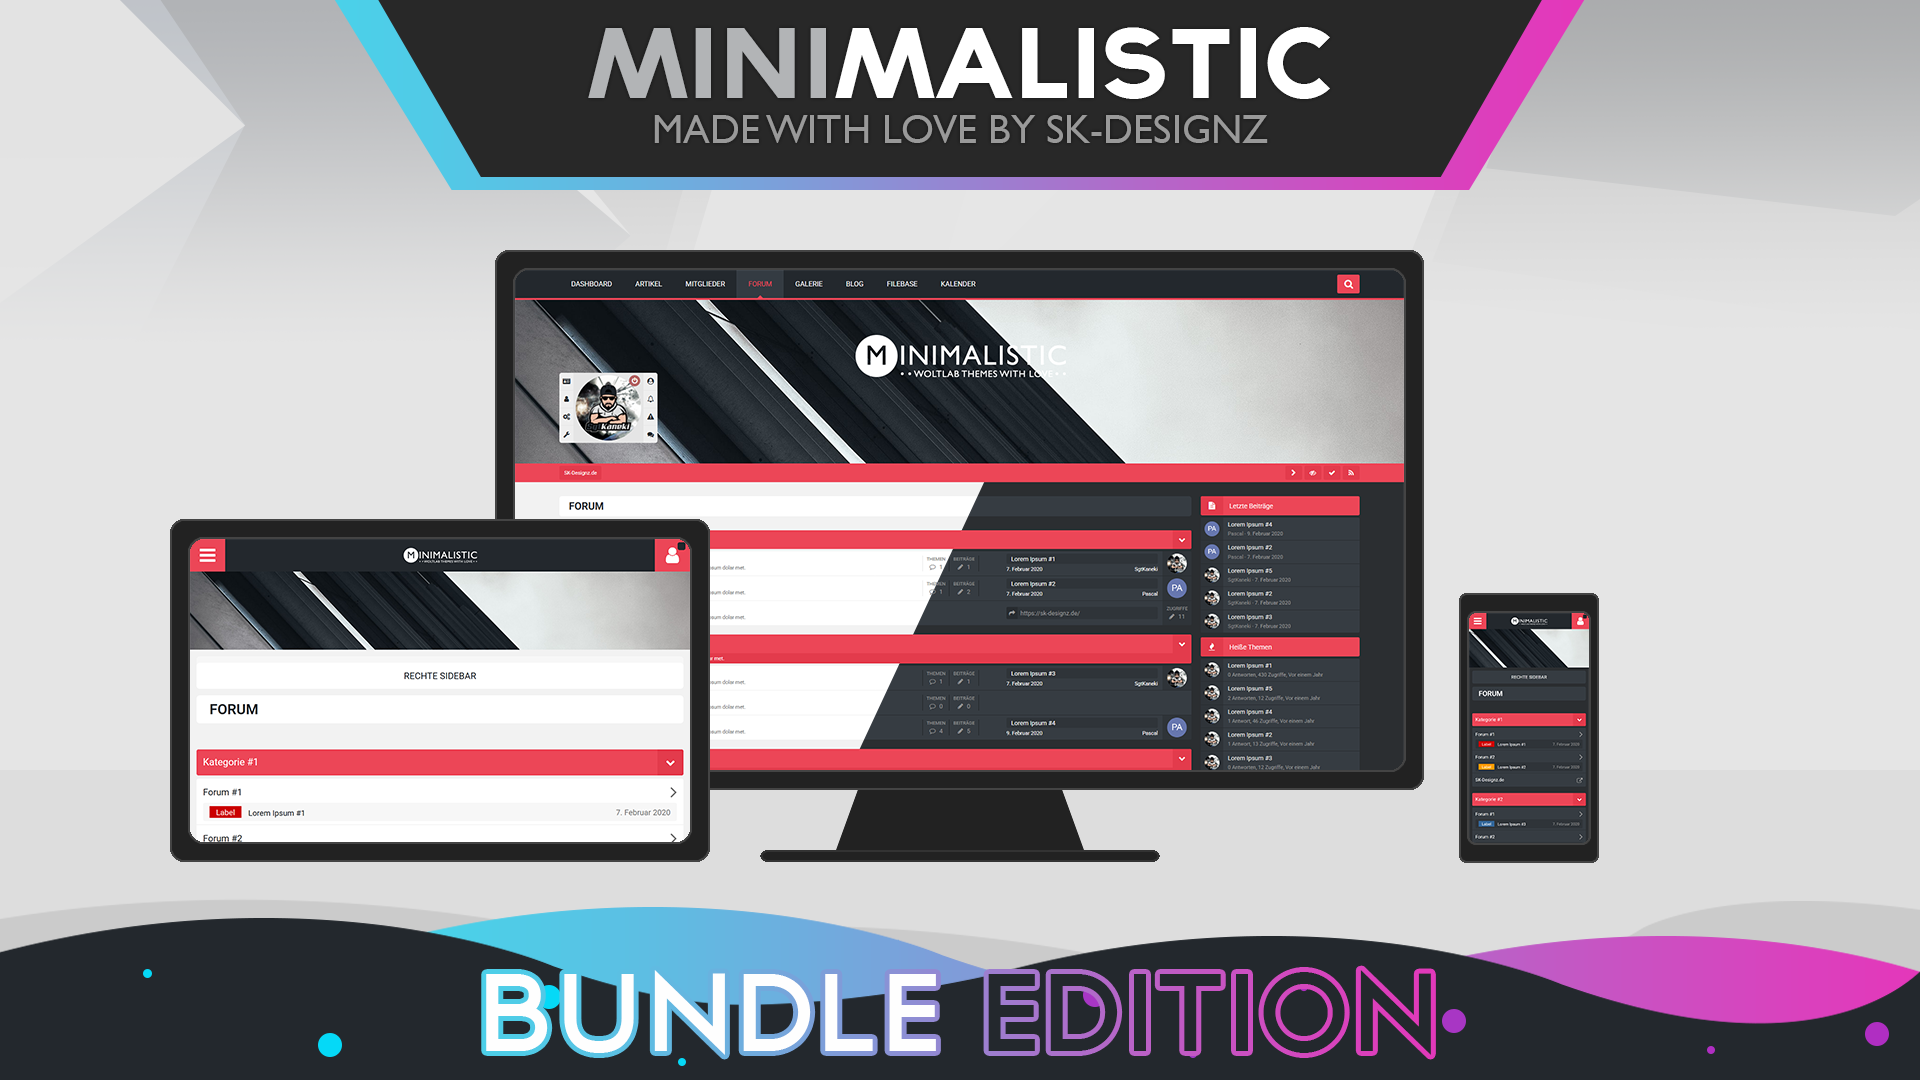 Minimalistic - Bundle Edition